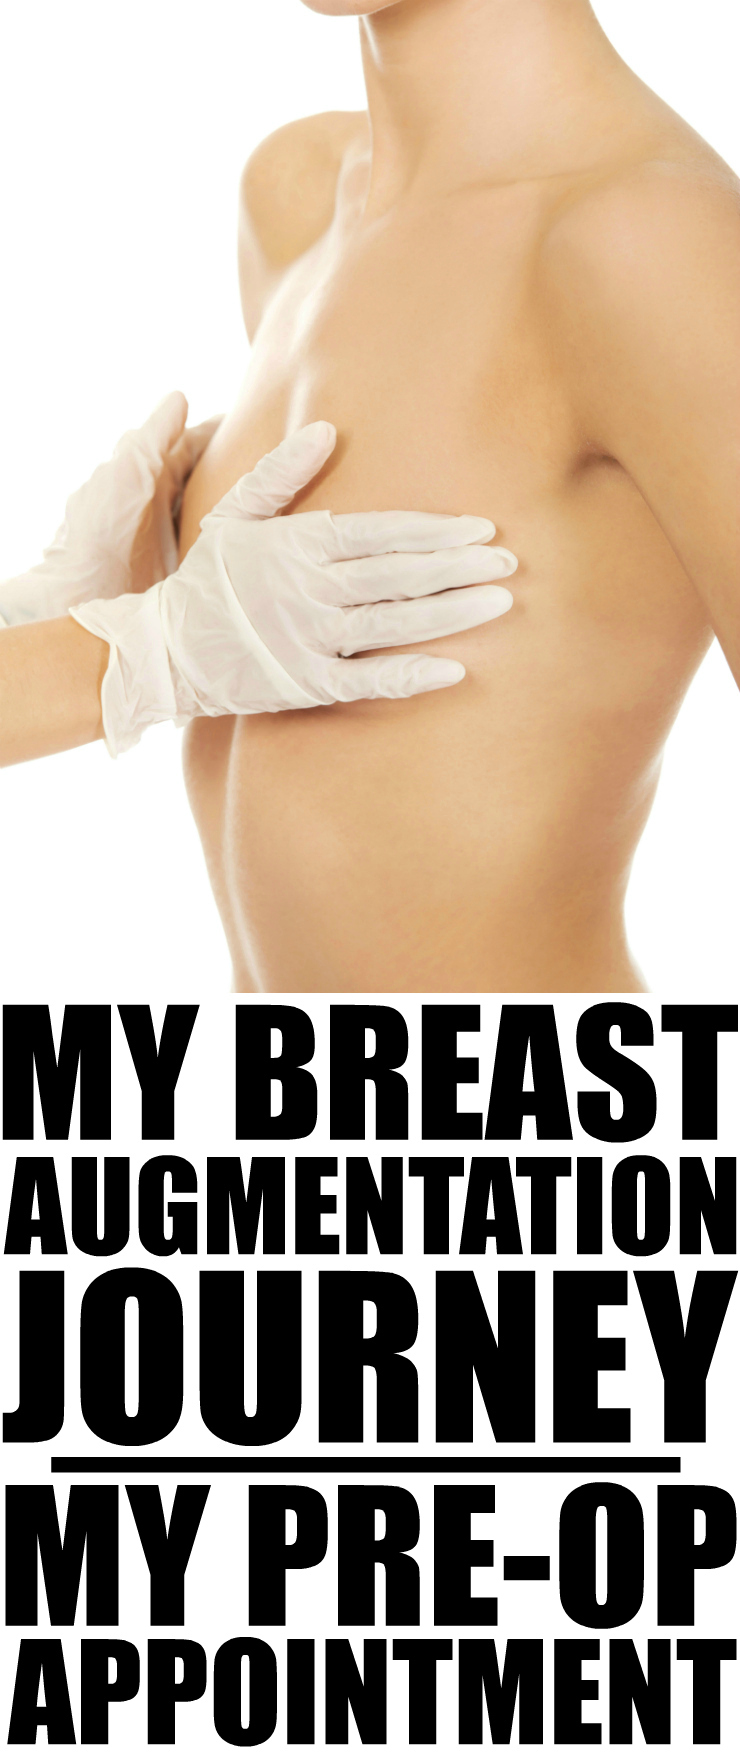 My Breast Augmentation Journey Breast Augmentation Pre-Op